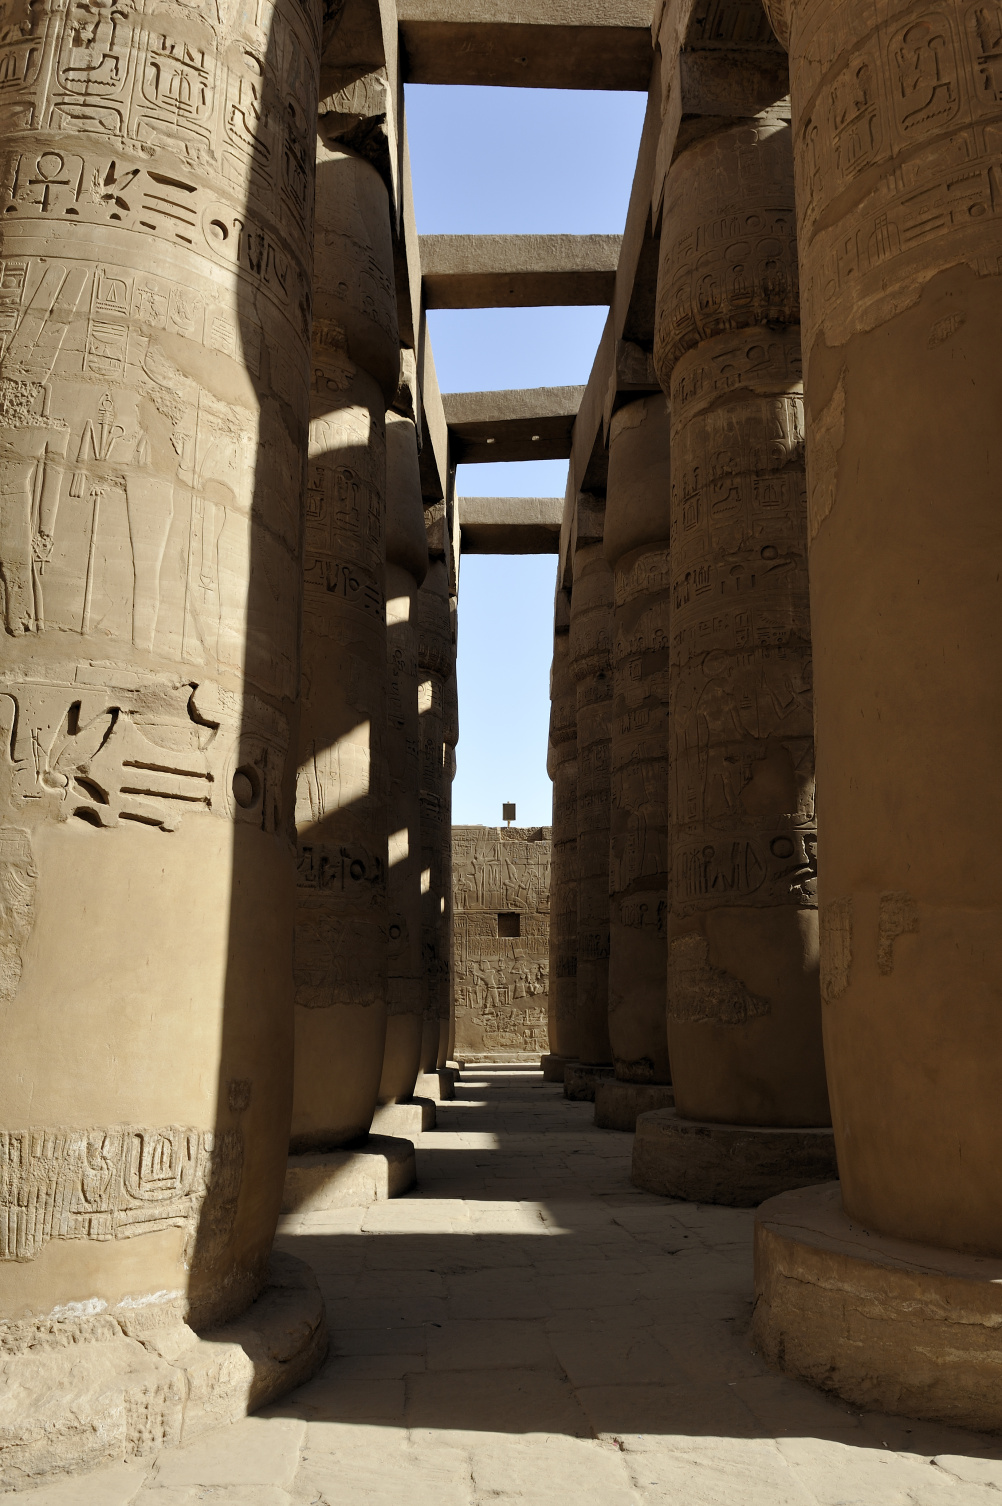 The temple of Amun-Re at Karnak, where Tayesmutengebtiu, also called Tamut, probably served as a priestess.